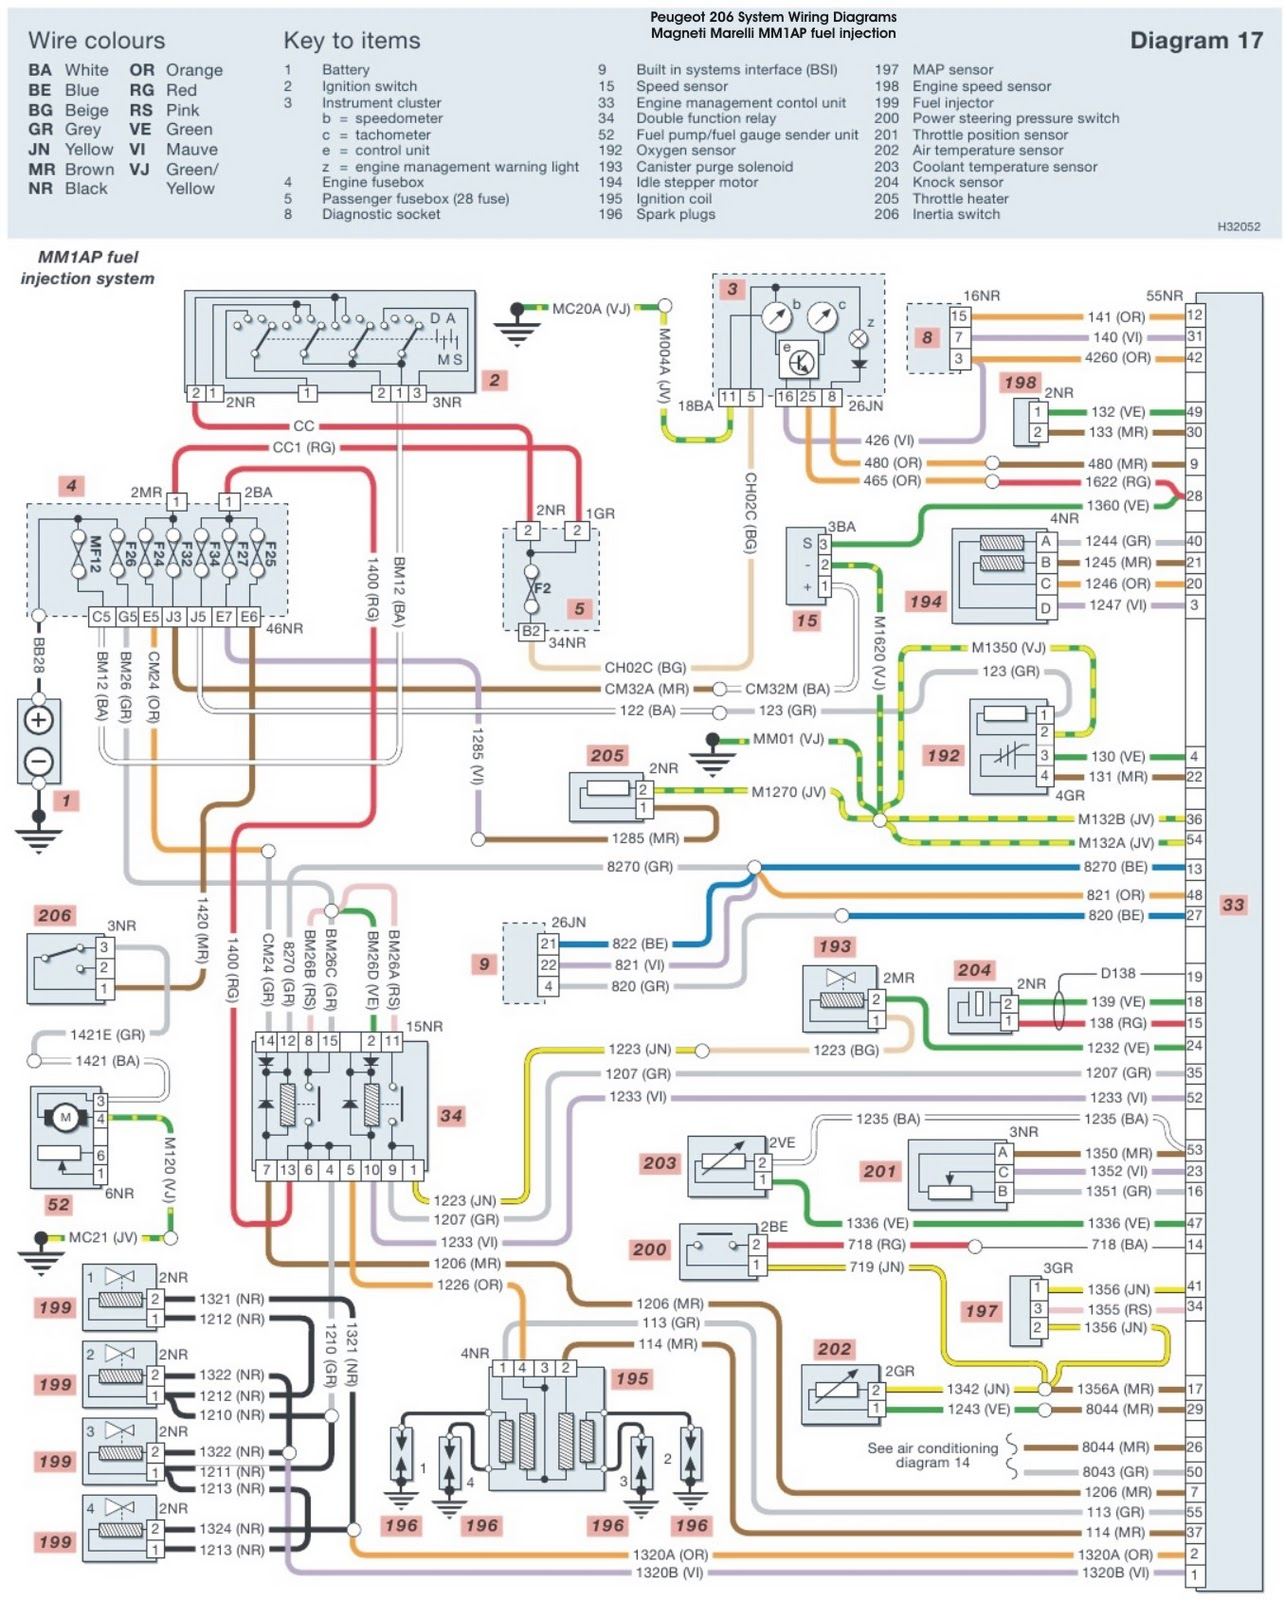 Peugeot 206 Fuel Injection System Wiring Diagrams